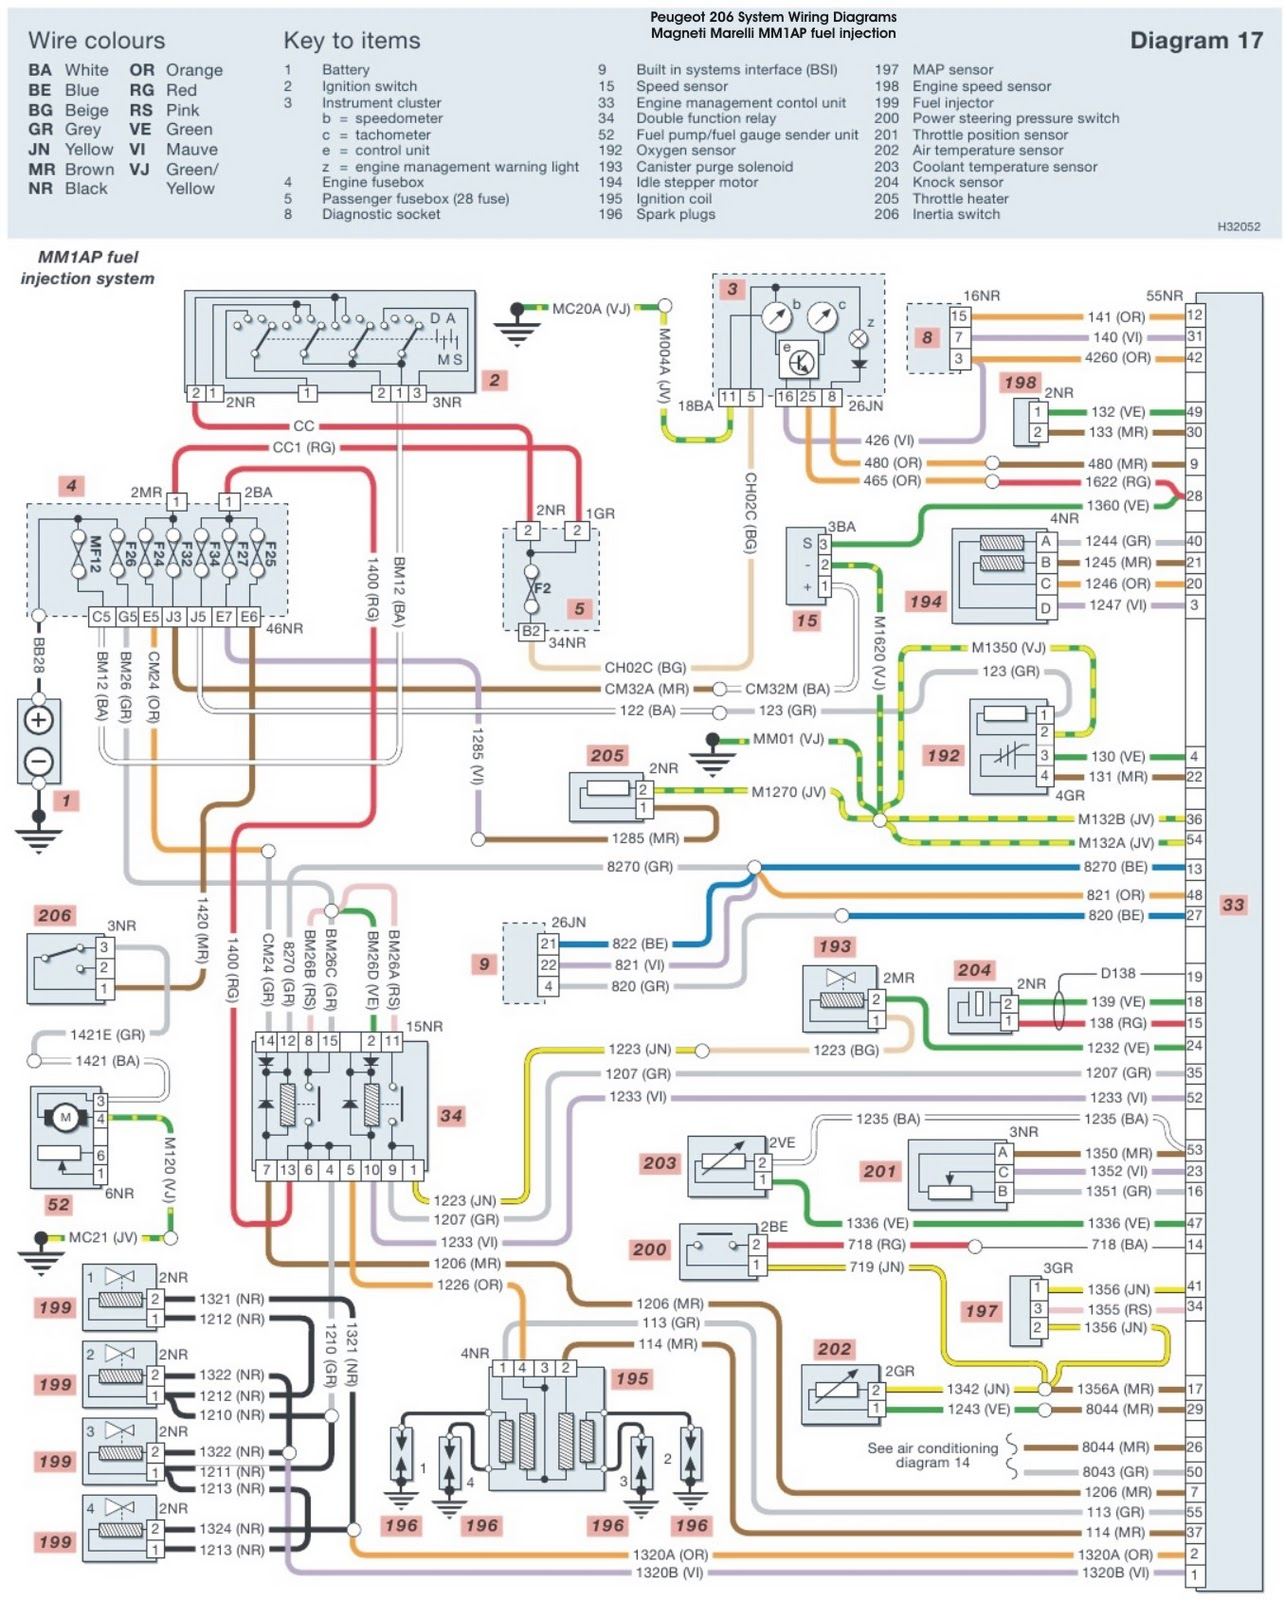 Peugeot 206 Fuel Injection System Wiring Diagrams